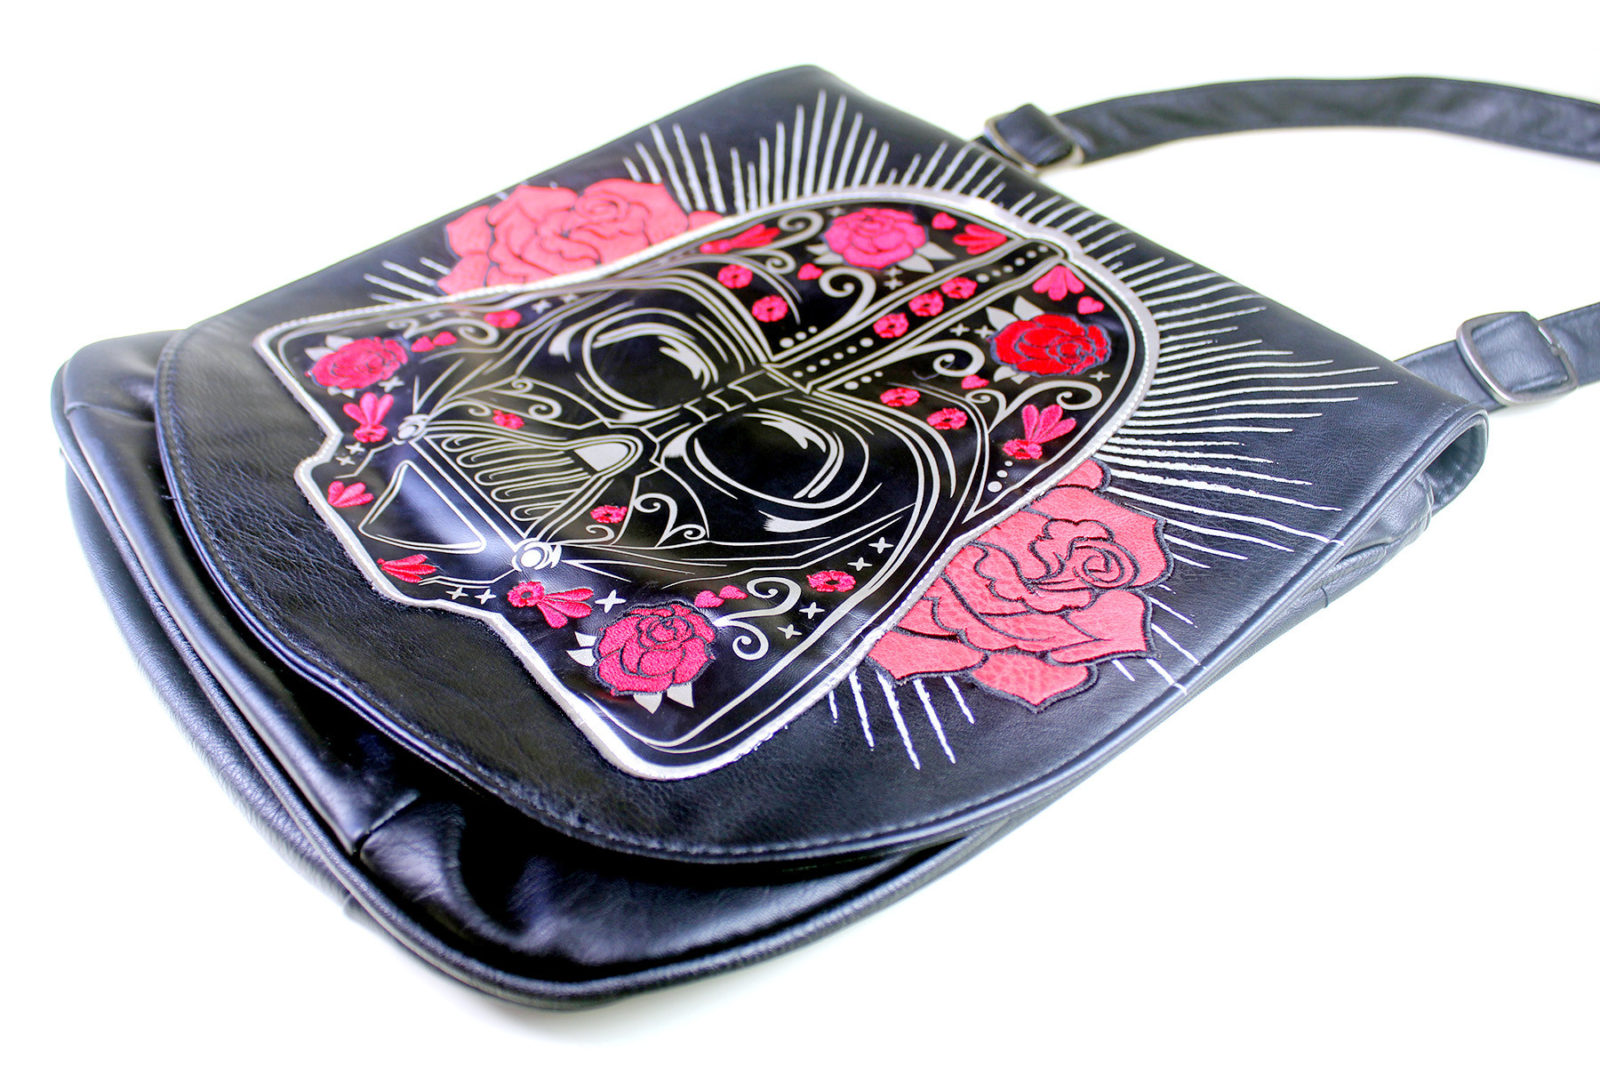 Review – Loungefly Darth Vader crossbody bag